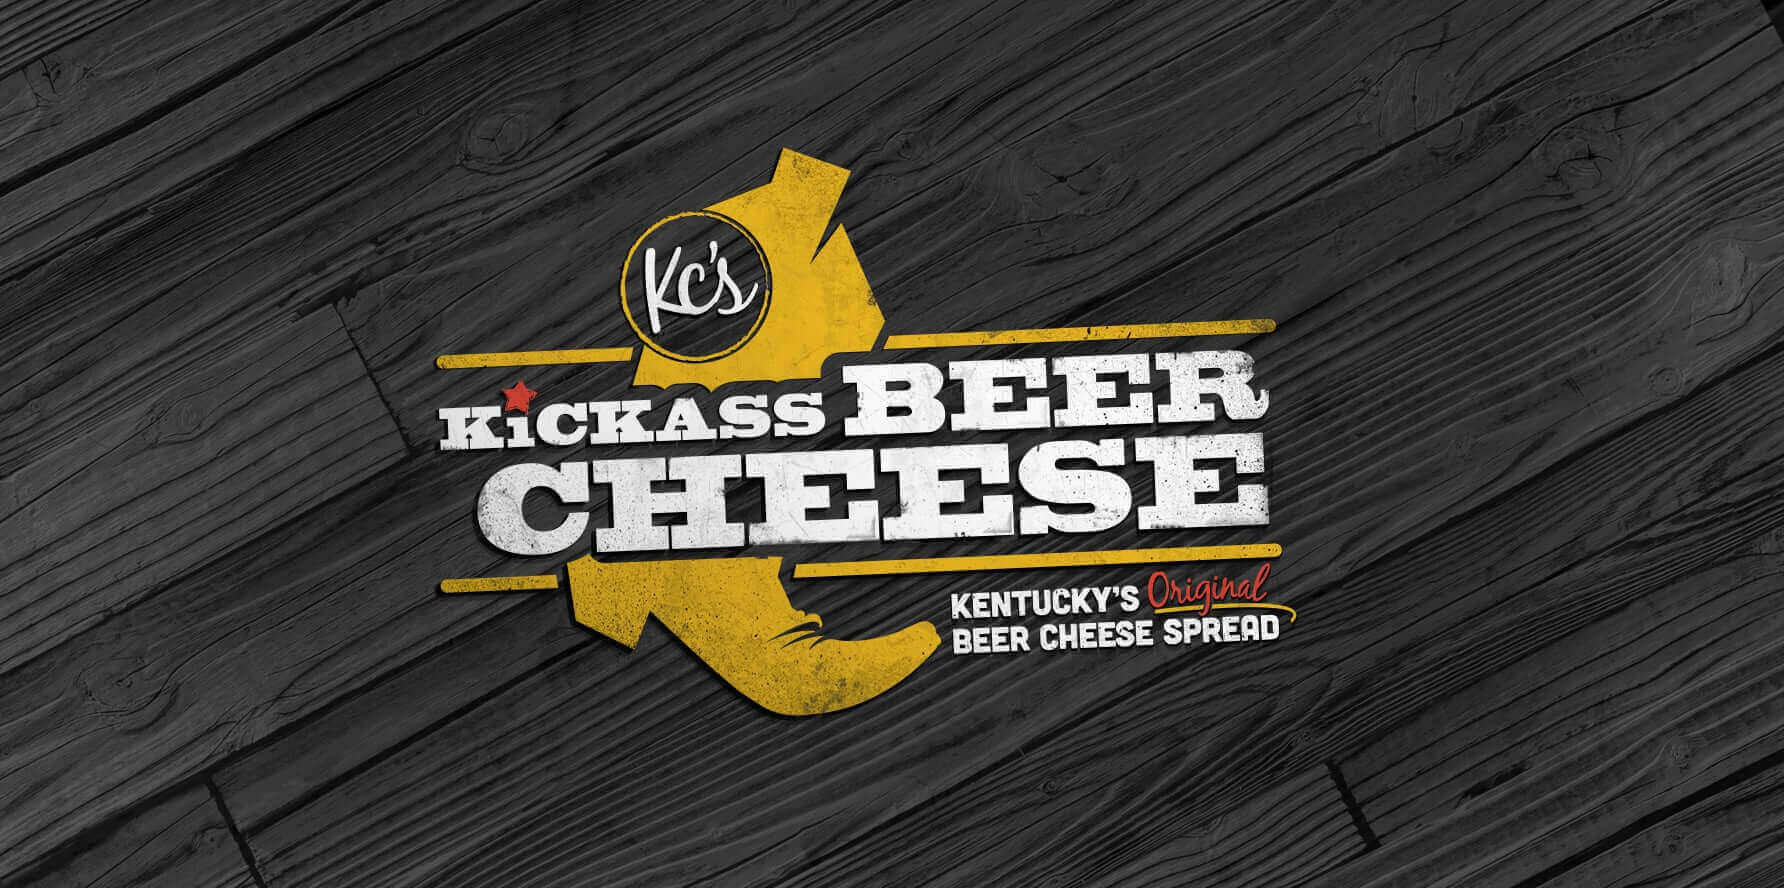 Kc's Kickass Beer Cheese Logo Design